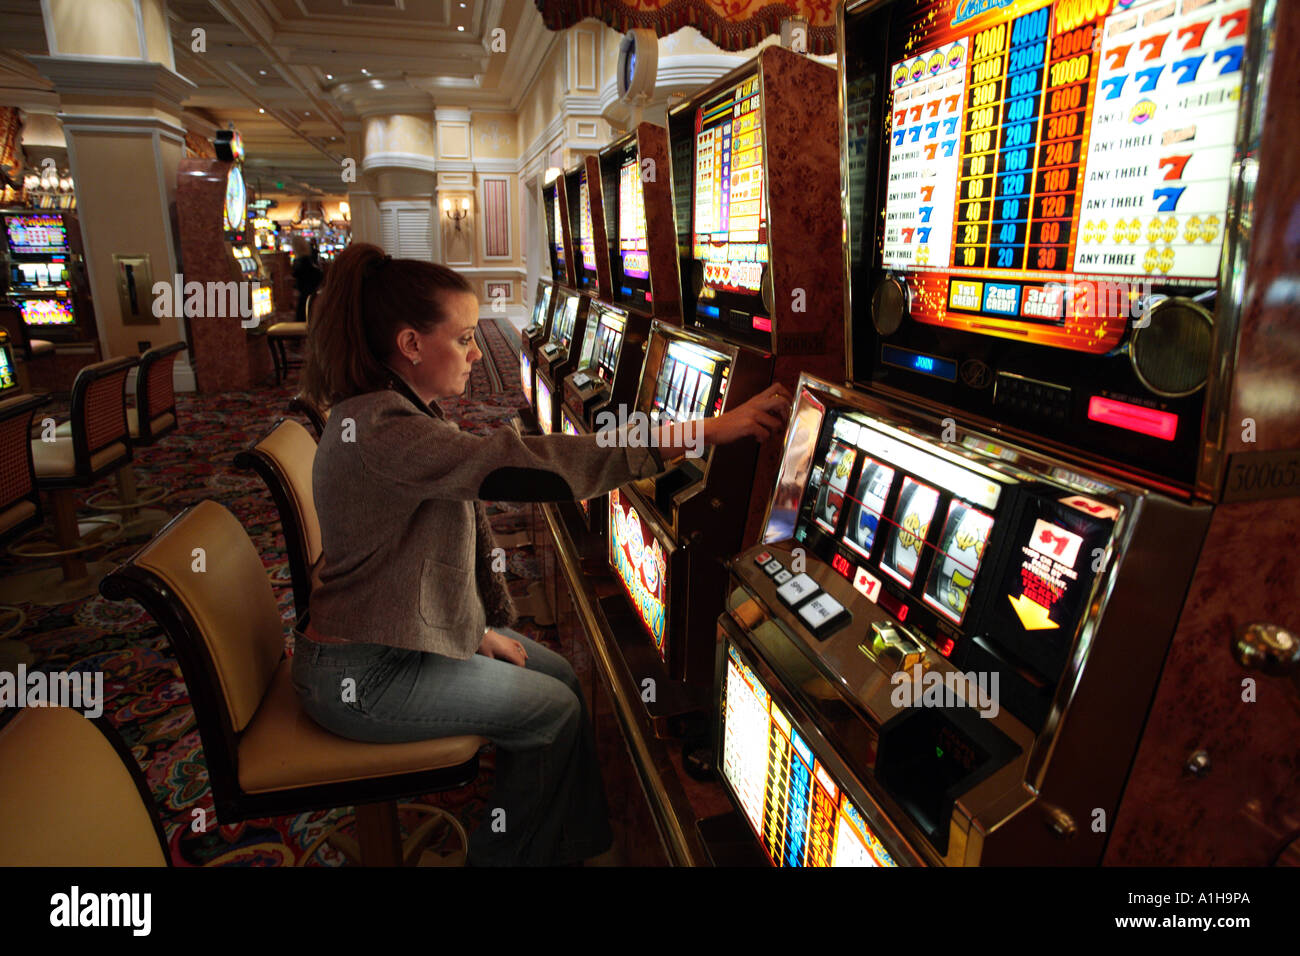 Pa slot machines seminol hard rock casino tampa